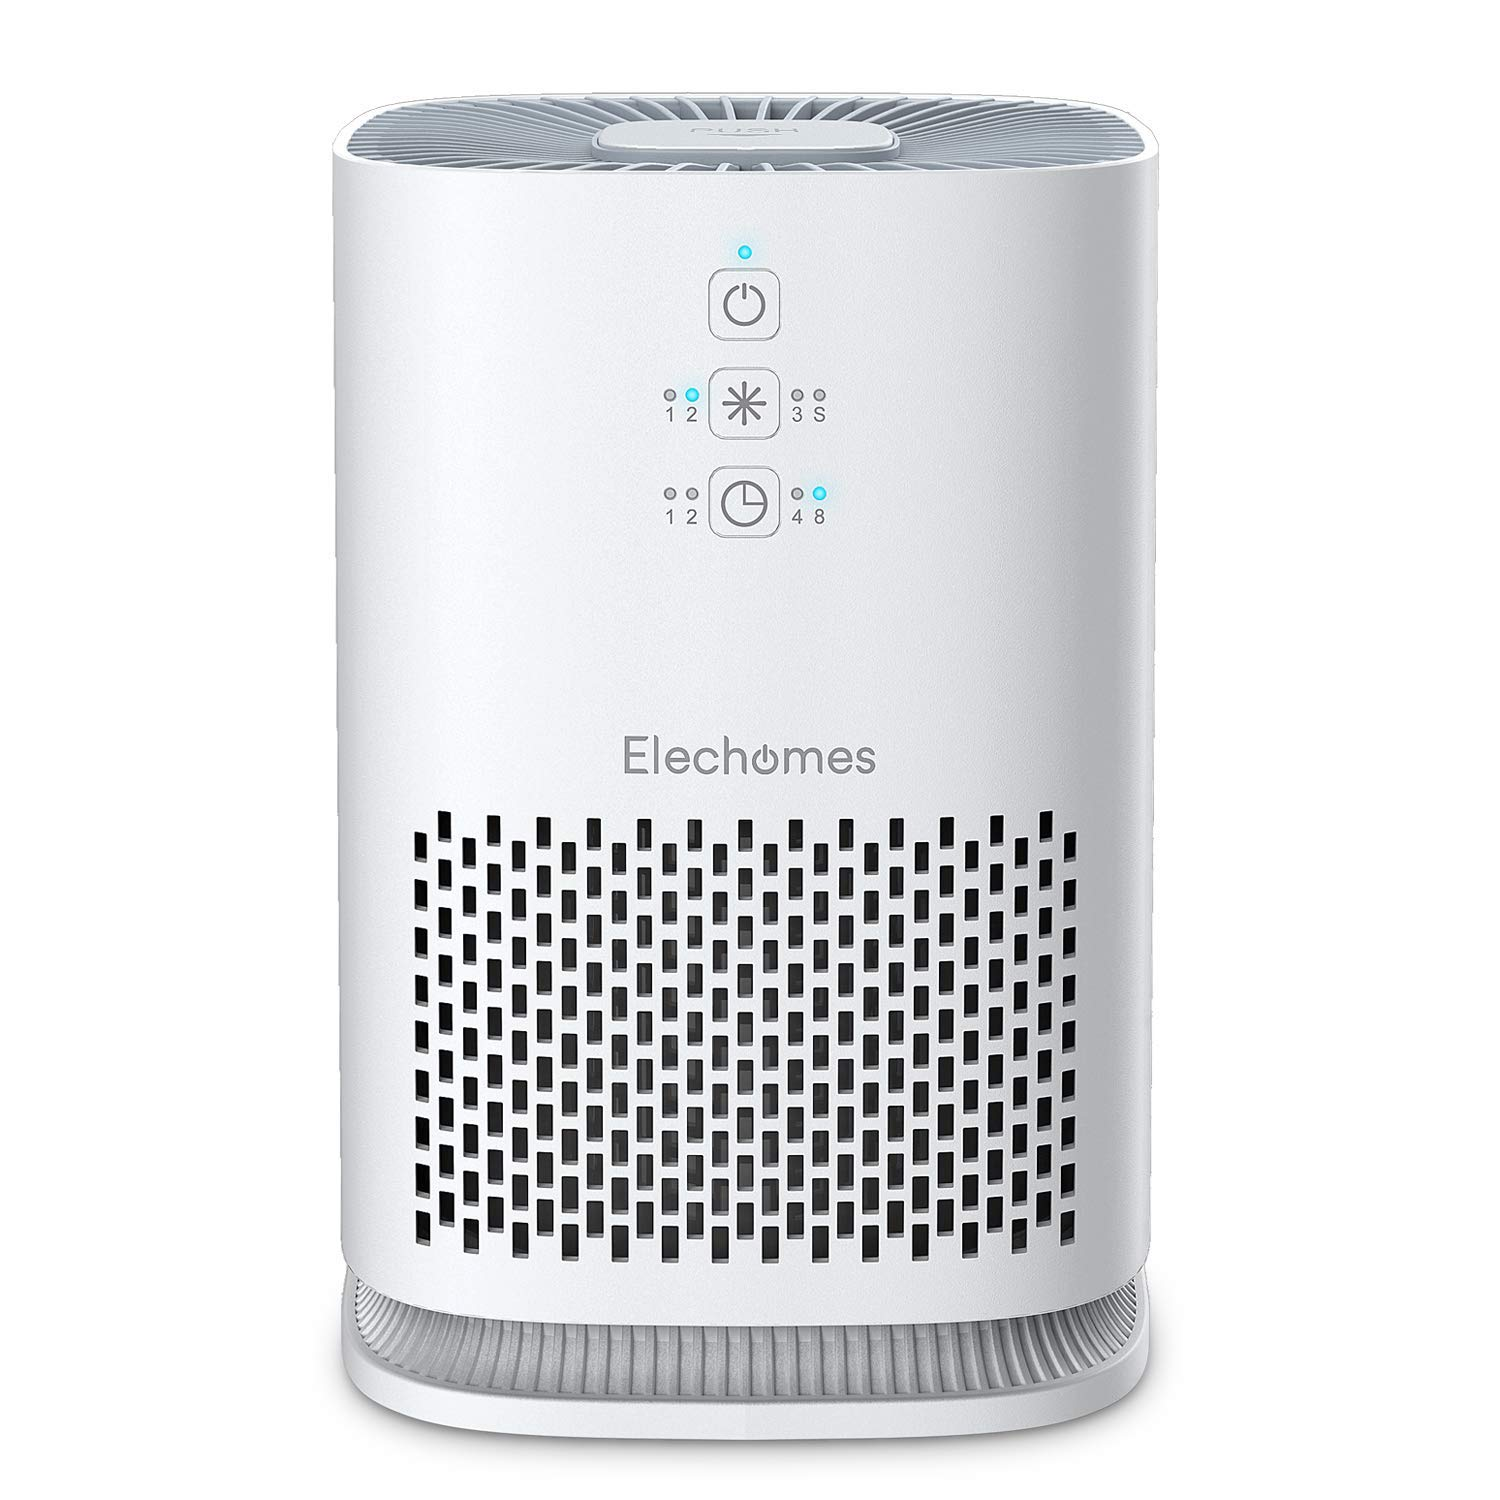 ELECHOMES Air Purifier for Home with True HEPA Filter, Air Cleaner Purifiers for Allergies and Pets Smokers Pollen Dust, Odor Eliminators for Home Bedroom